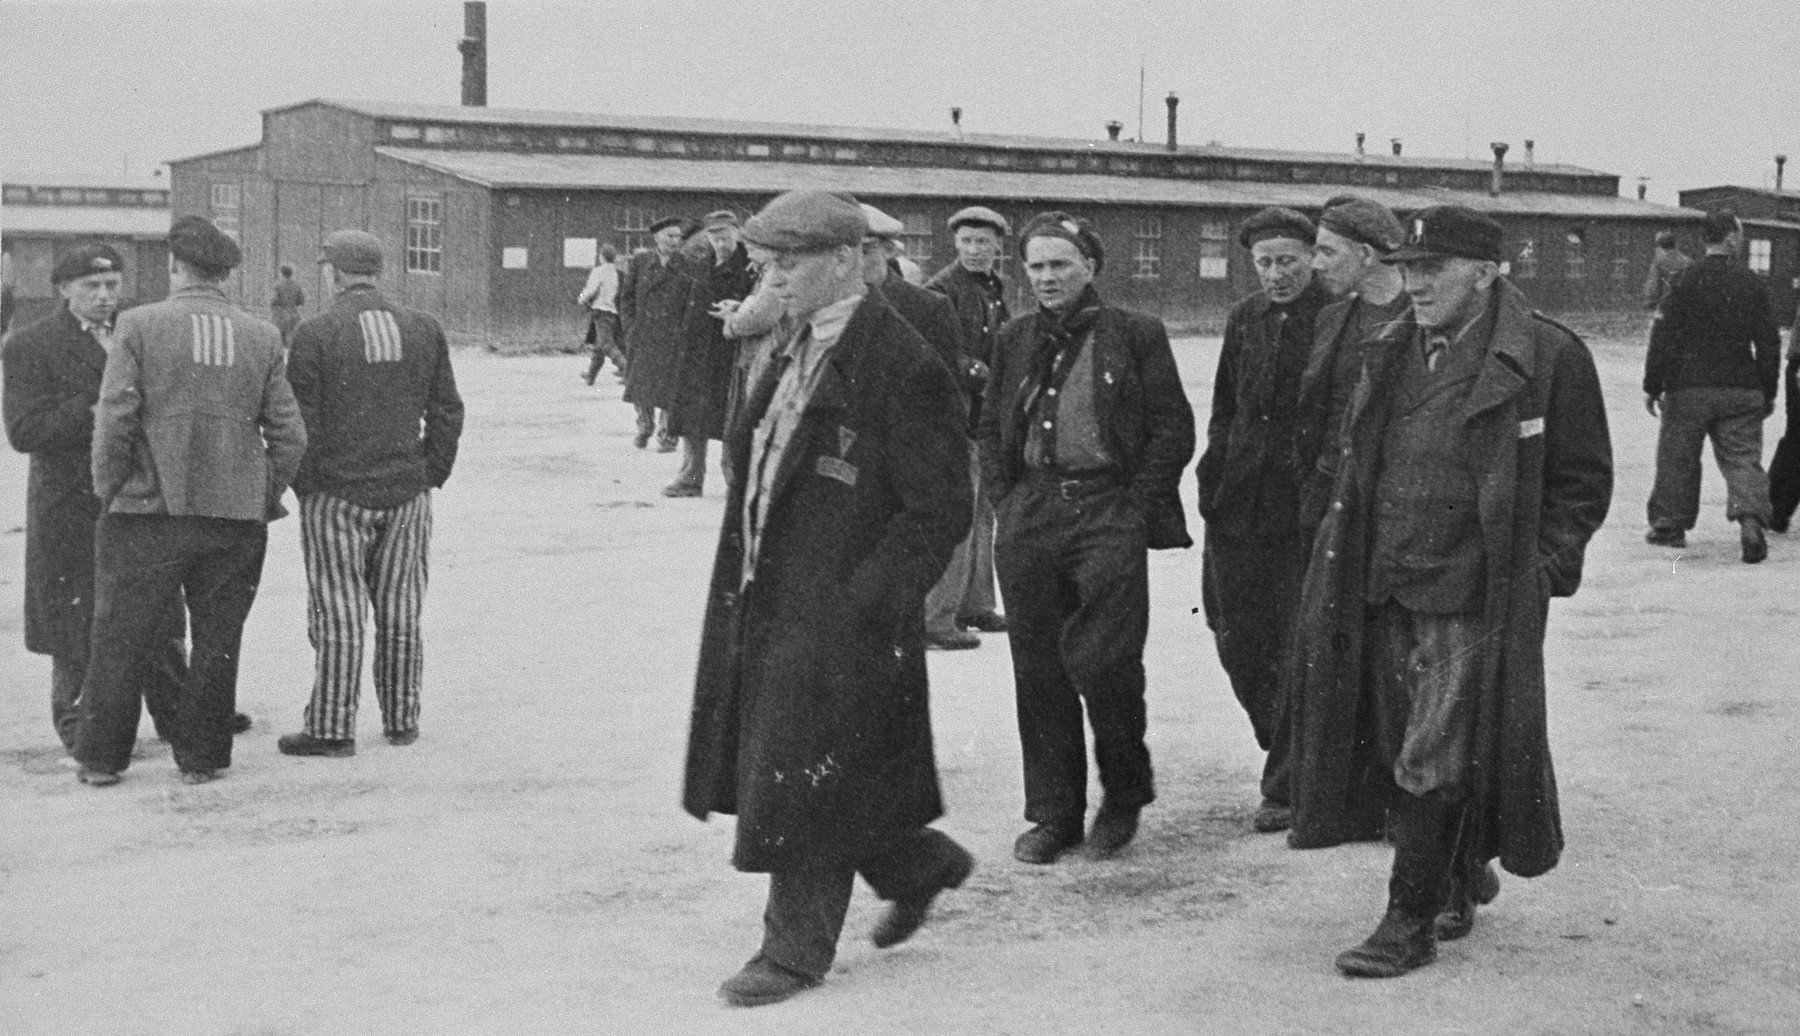 Survivors walk though the Buchenwald concentration camp after liberation.